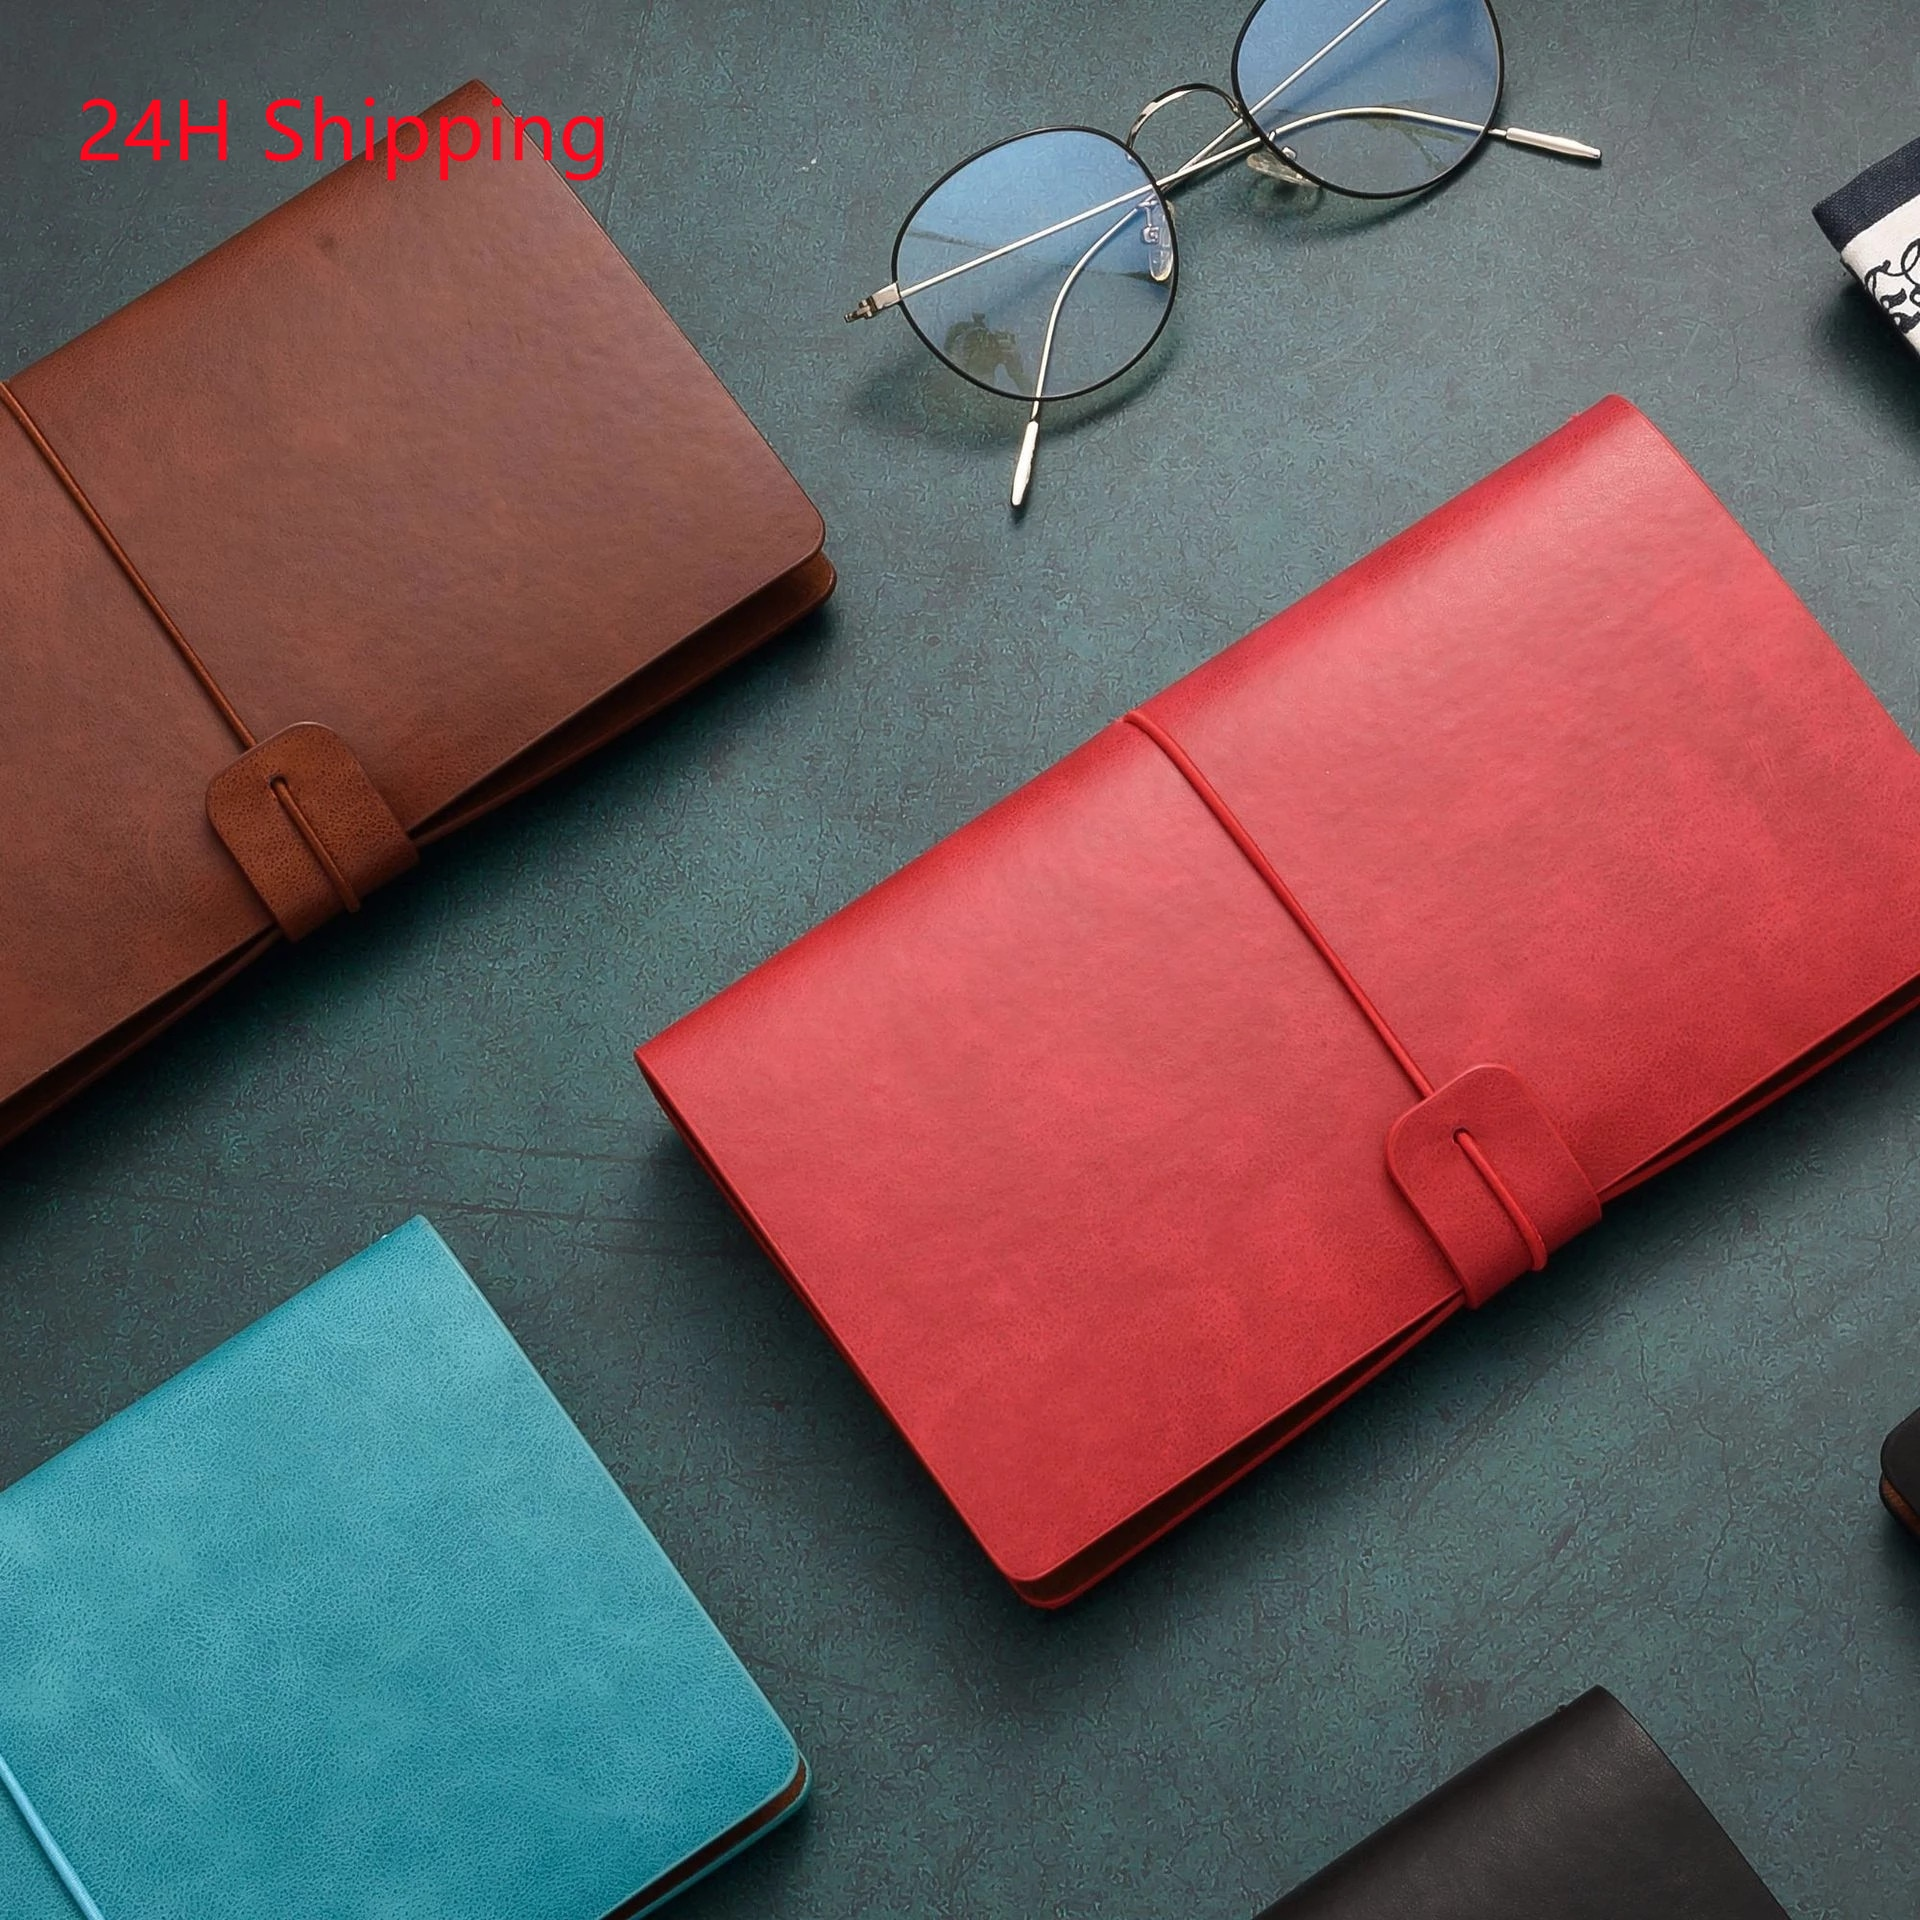 AliExpress - A6 Retro notebook diary notepad vintage PU leather notebook replaceable stationery gift traveler's diary planner dropshipping